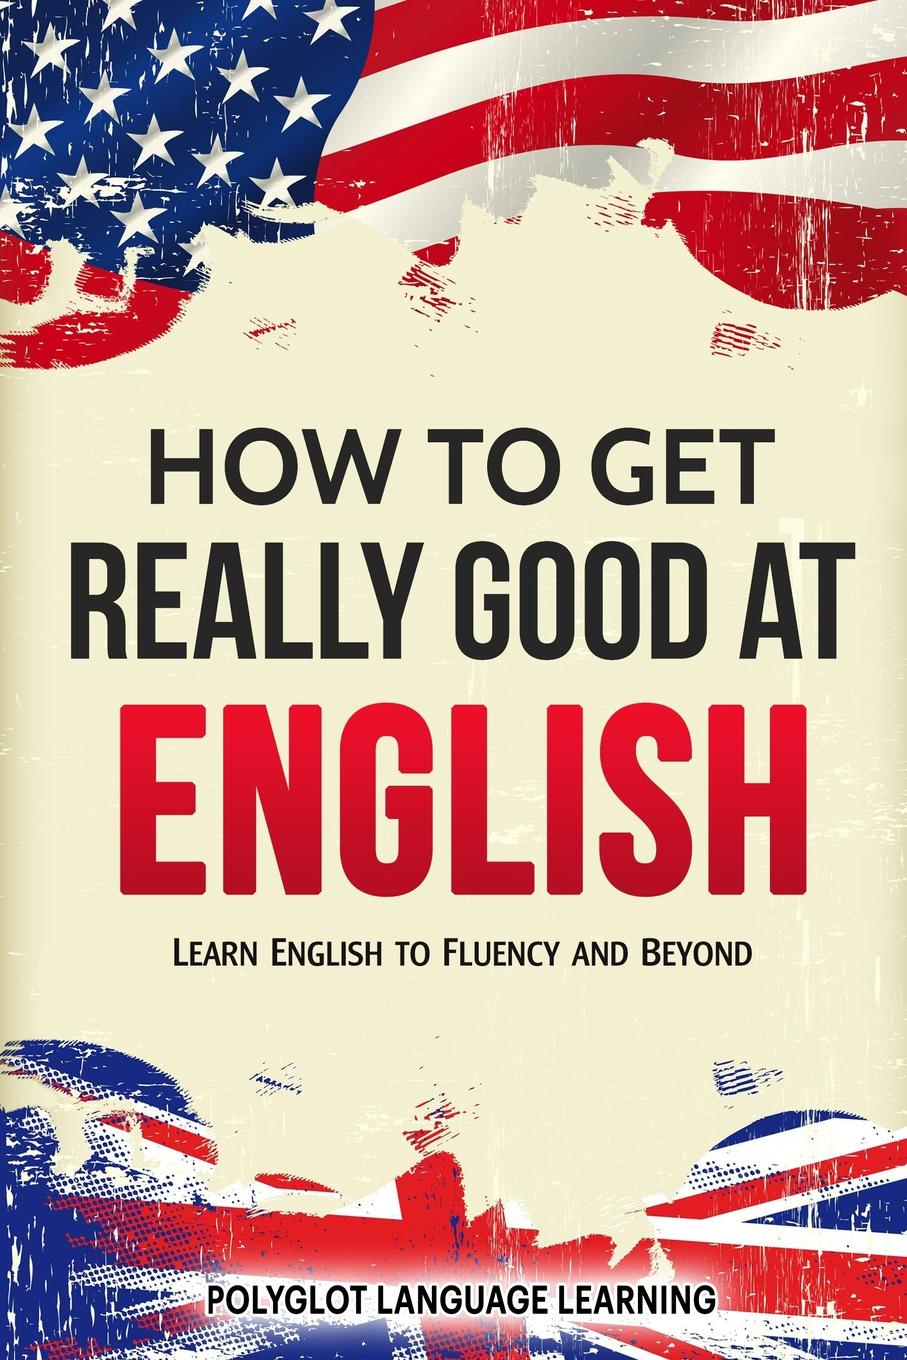 Language Learning Polyglot How to Get Really Good at English. Learn English to Fluency and Beyond andrey ermoshin learn languages easily methods of self regulation for successful learning